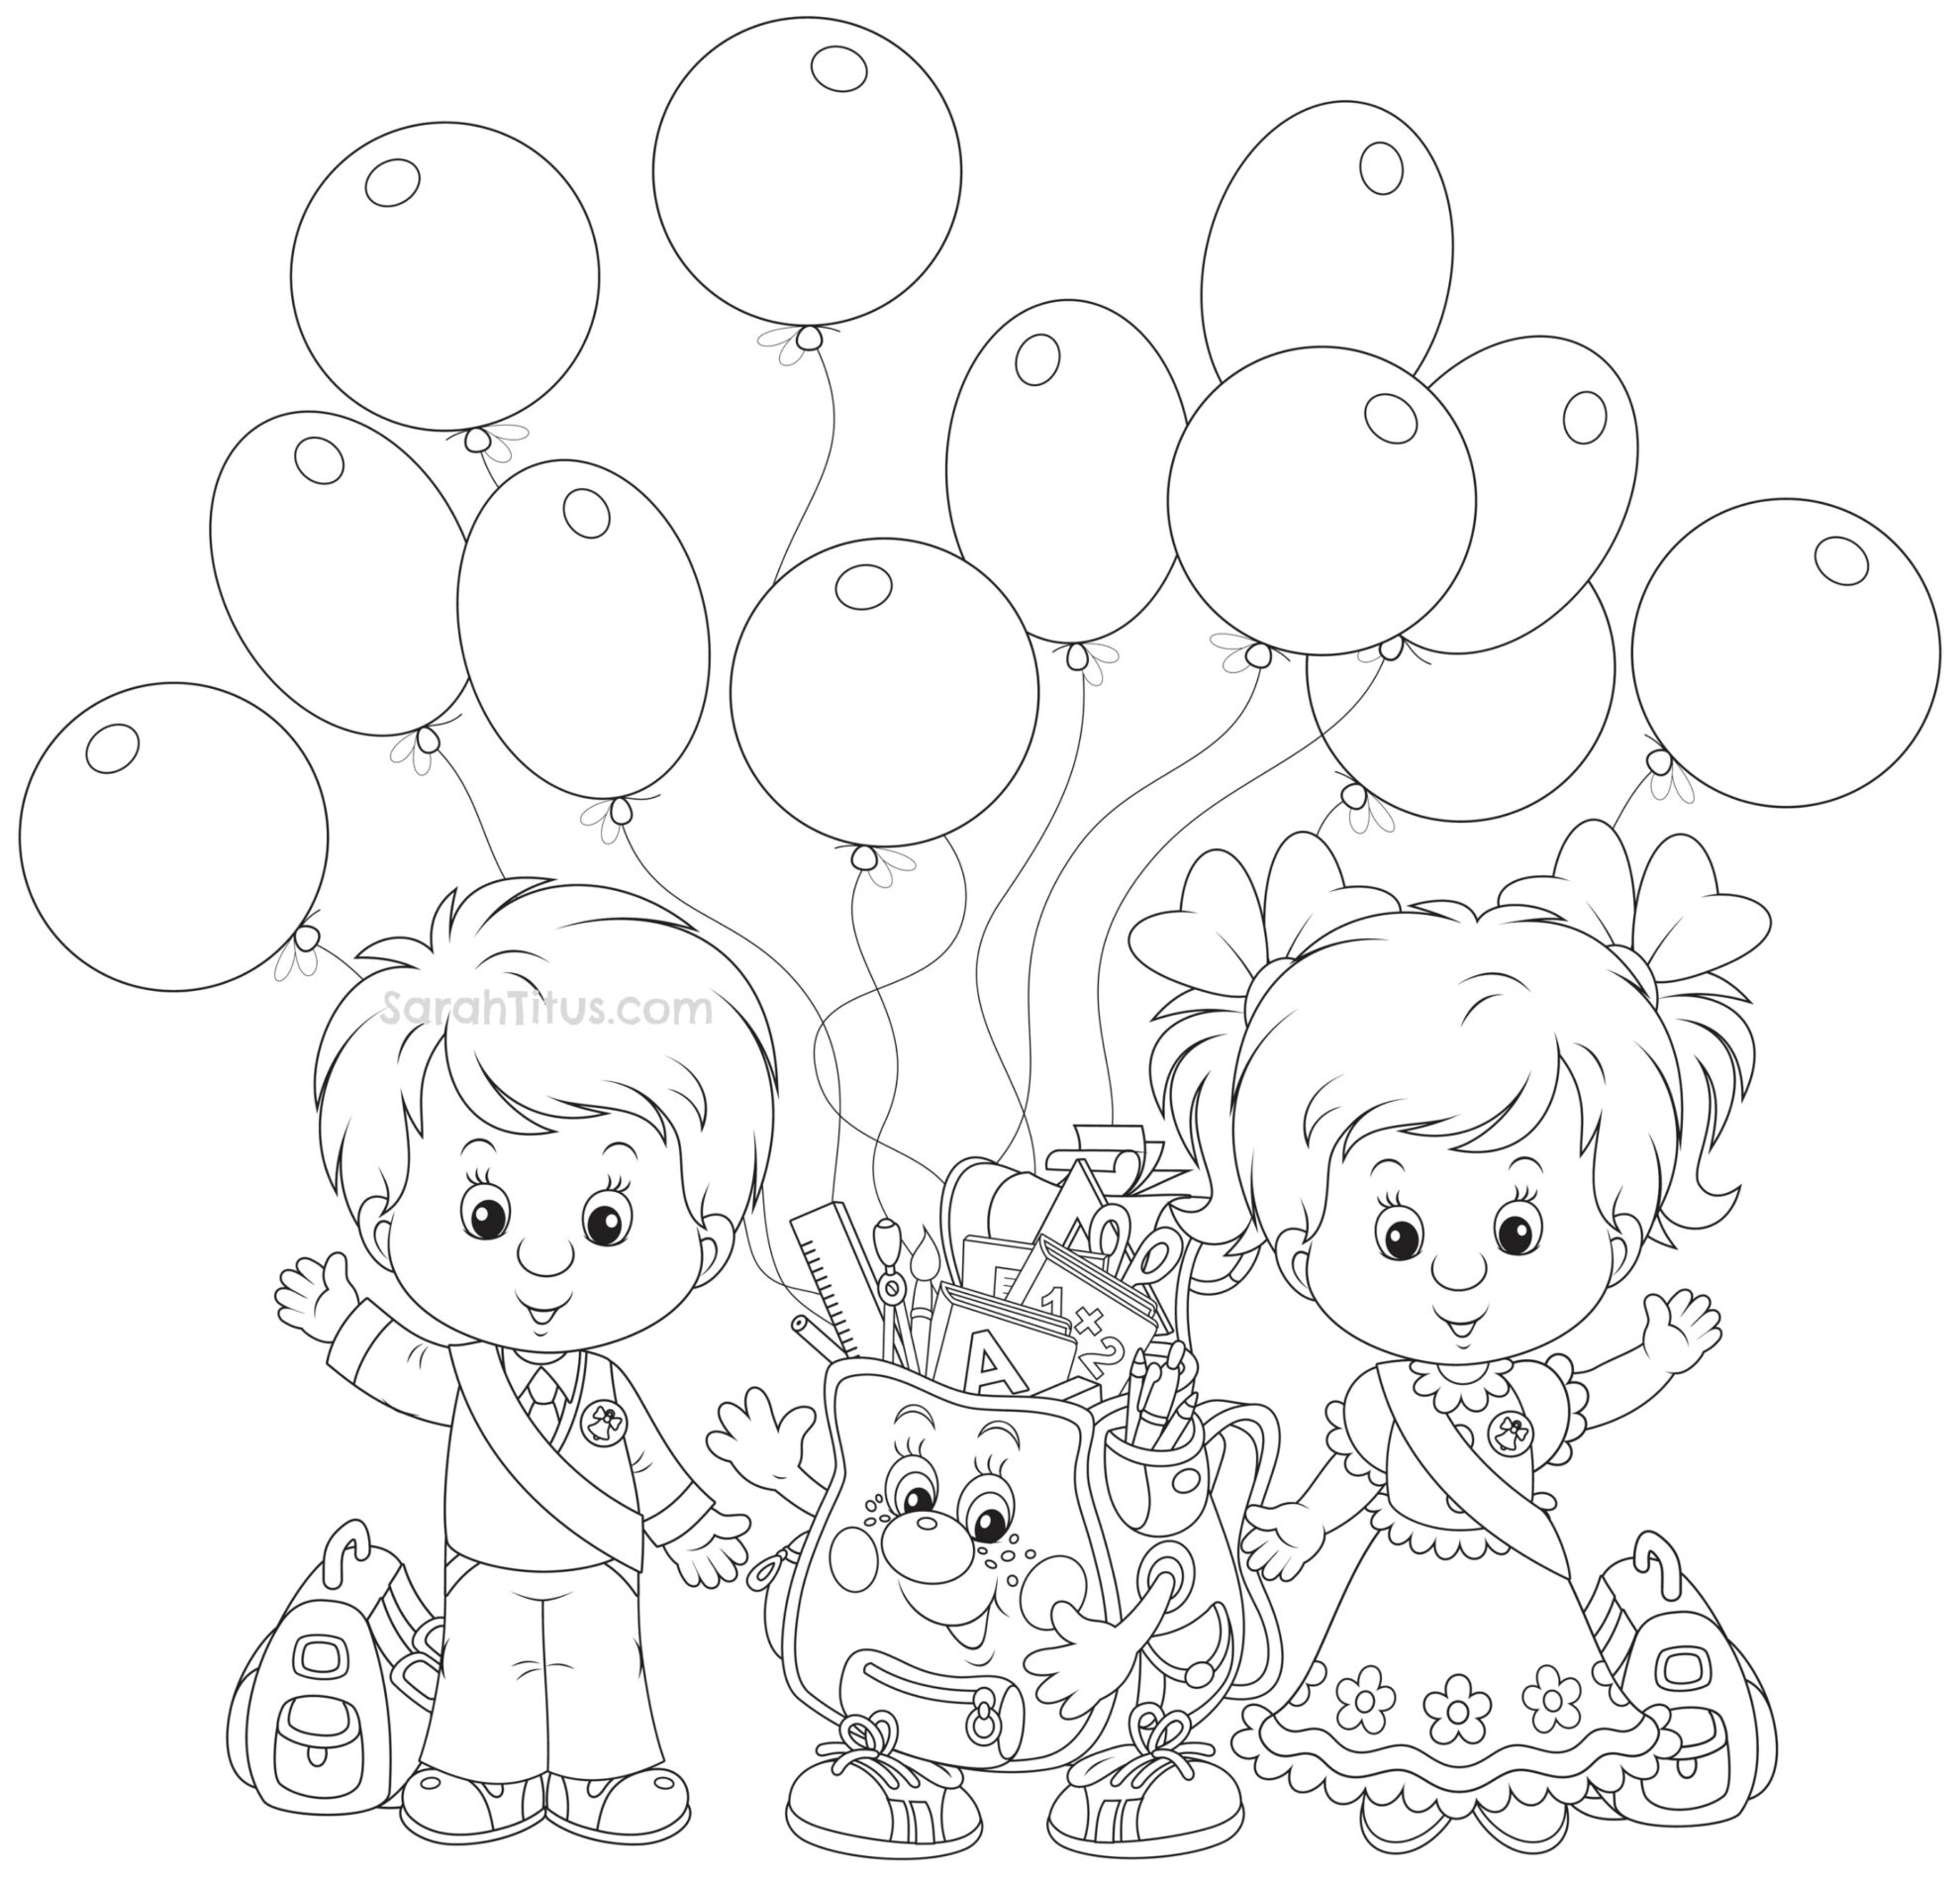 Back To School Coloring Pages  Sarah Titus | From within Sarah Titus Printables